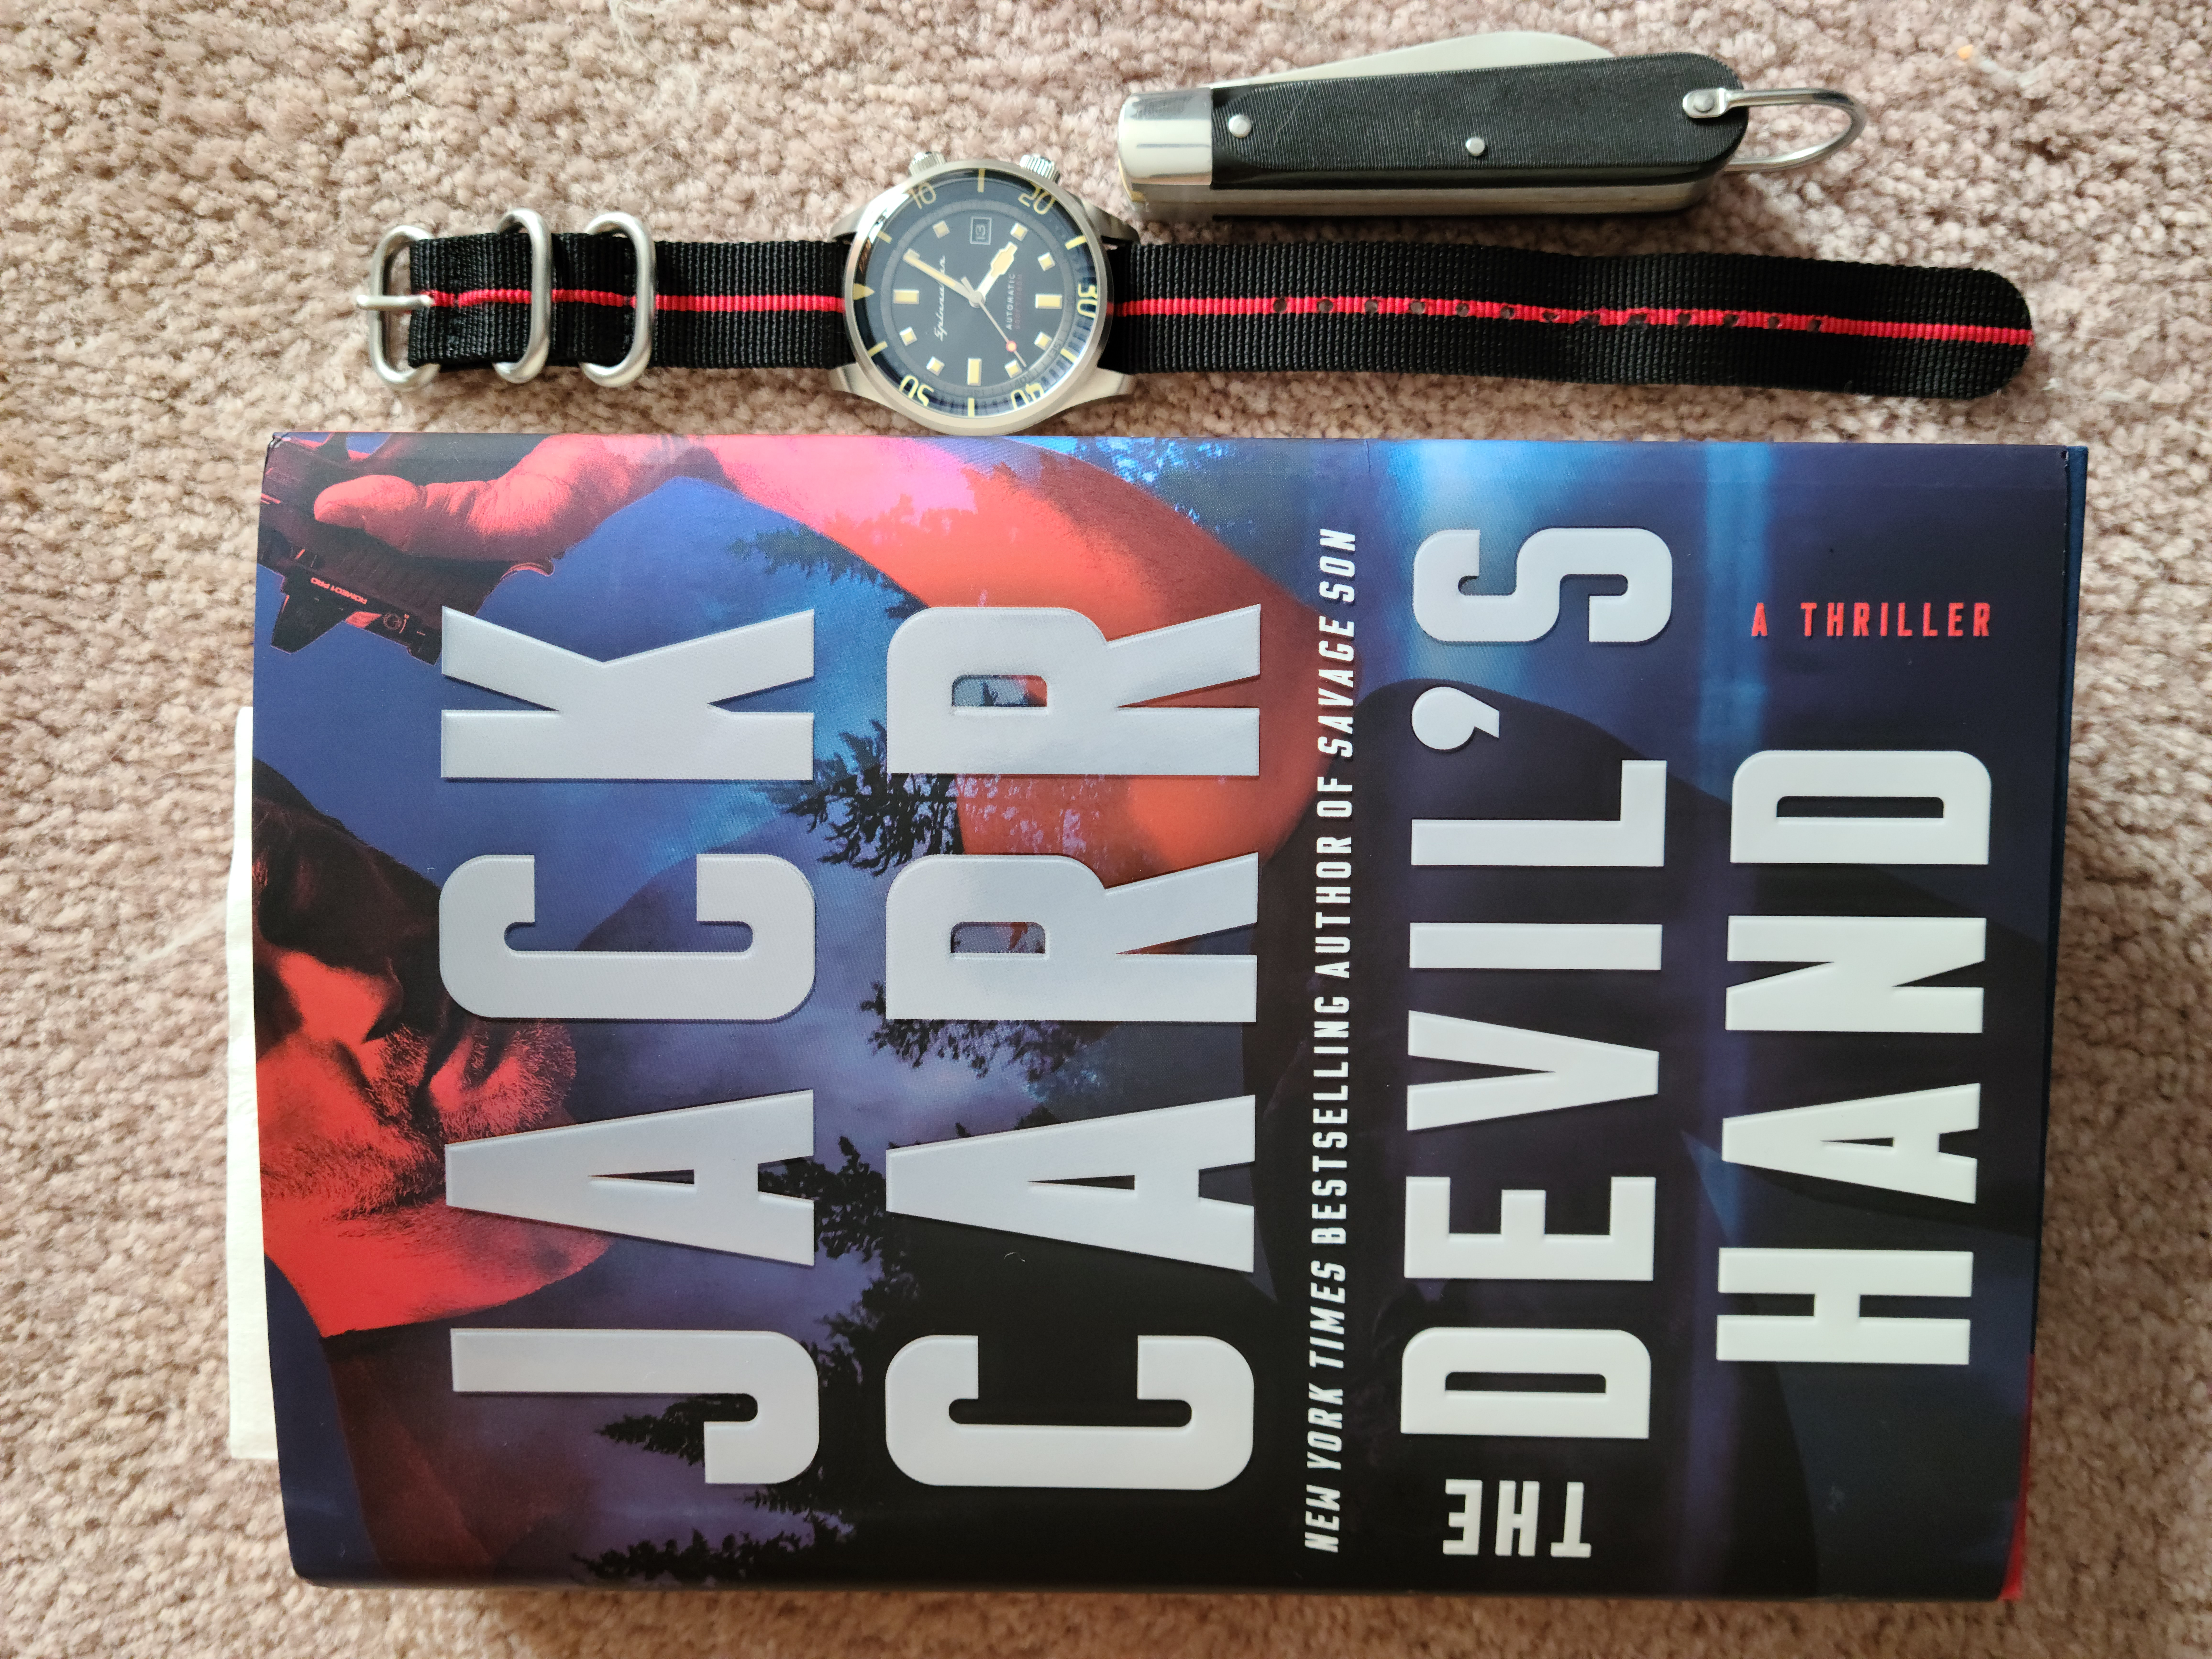 Books, watches and knives.